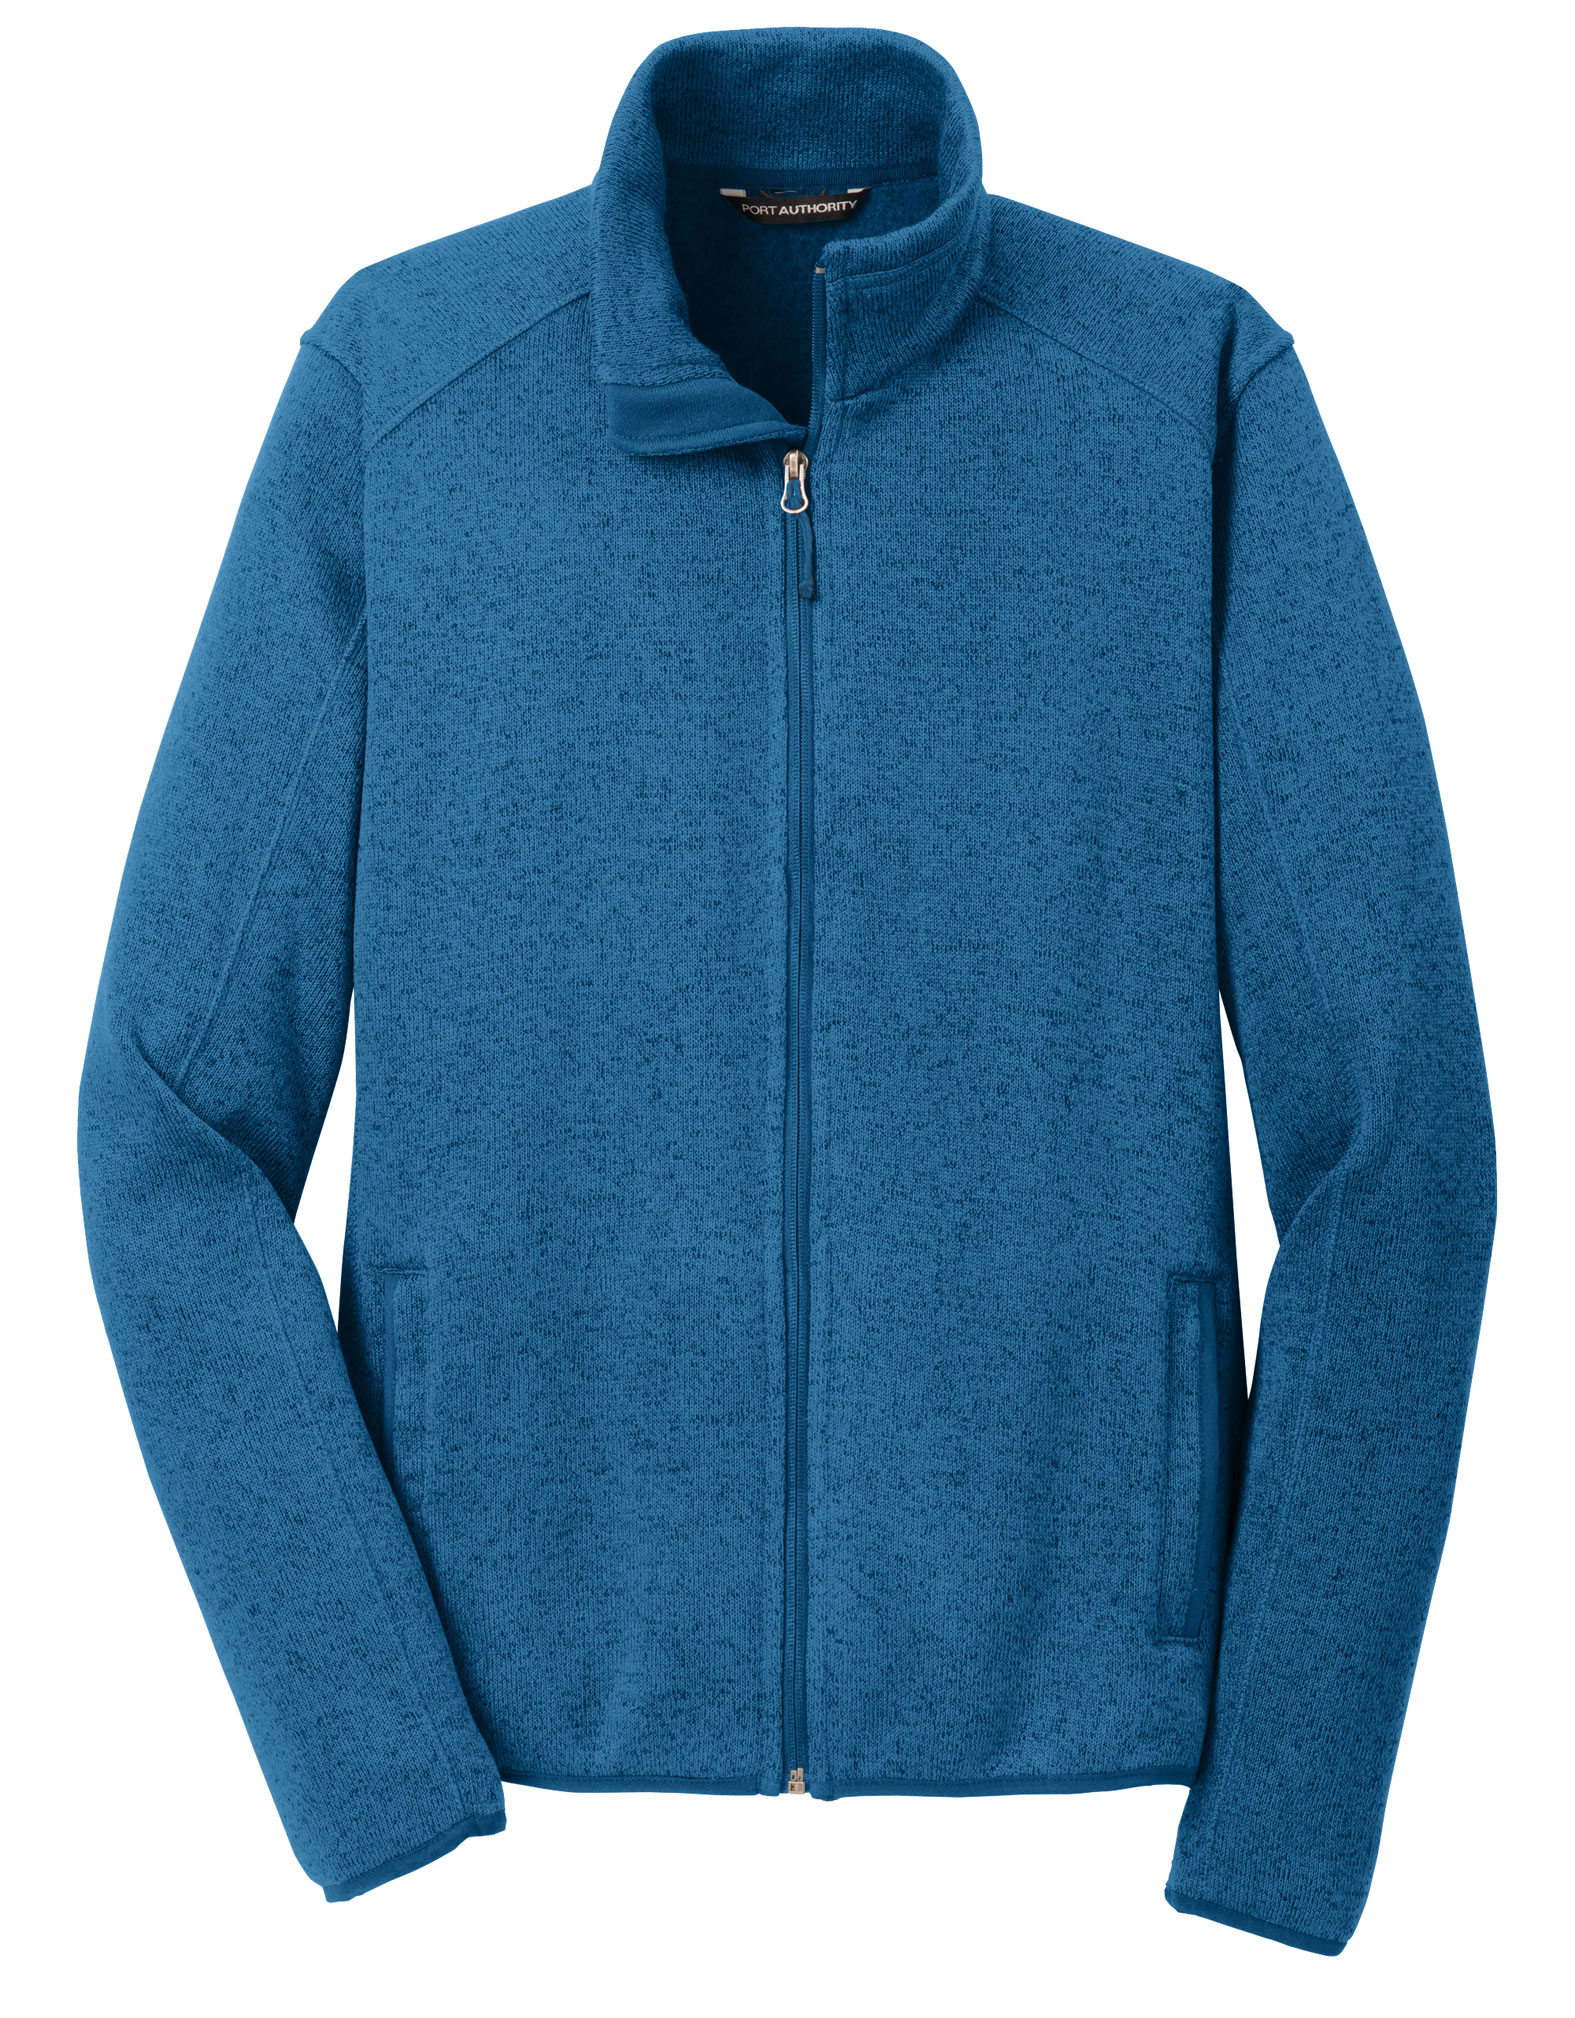 Mens Sweater Fleece Jacket